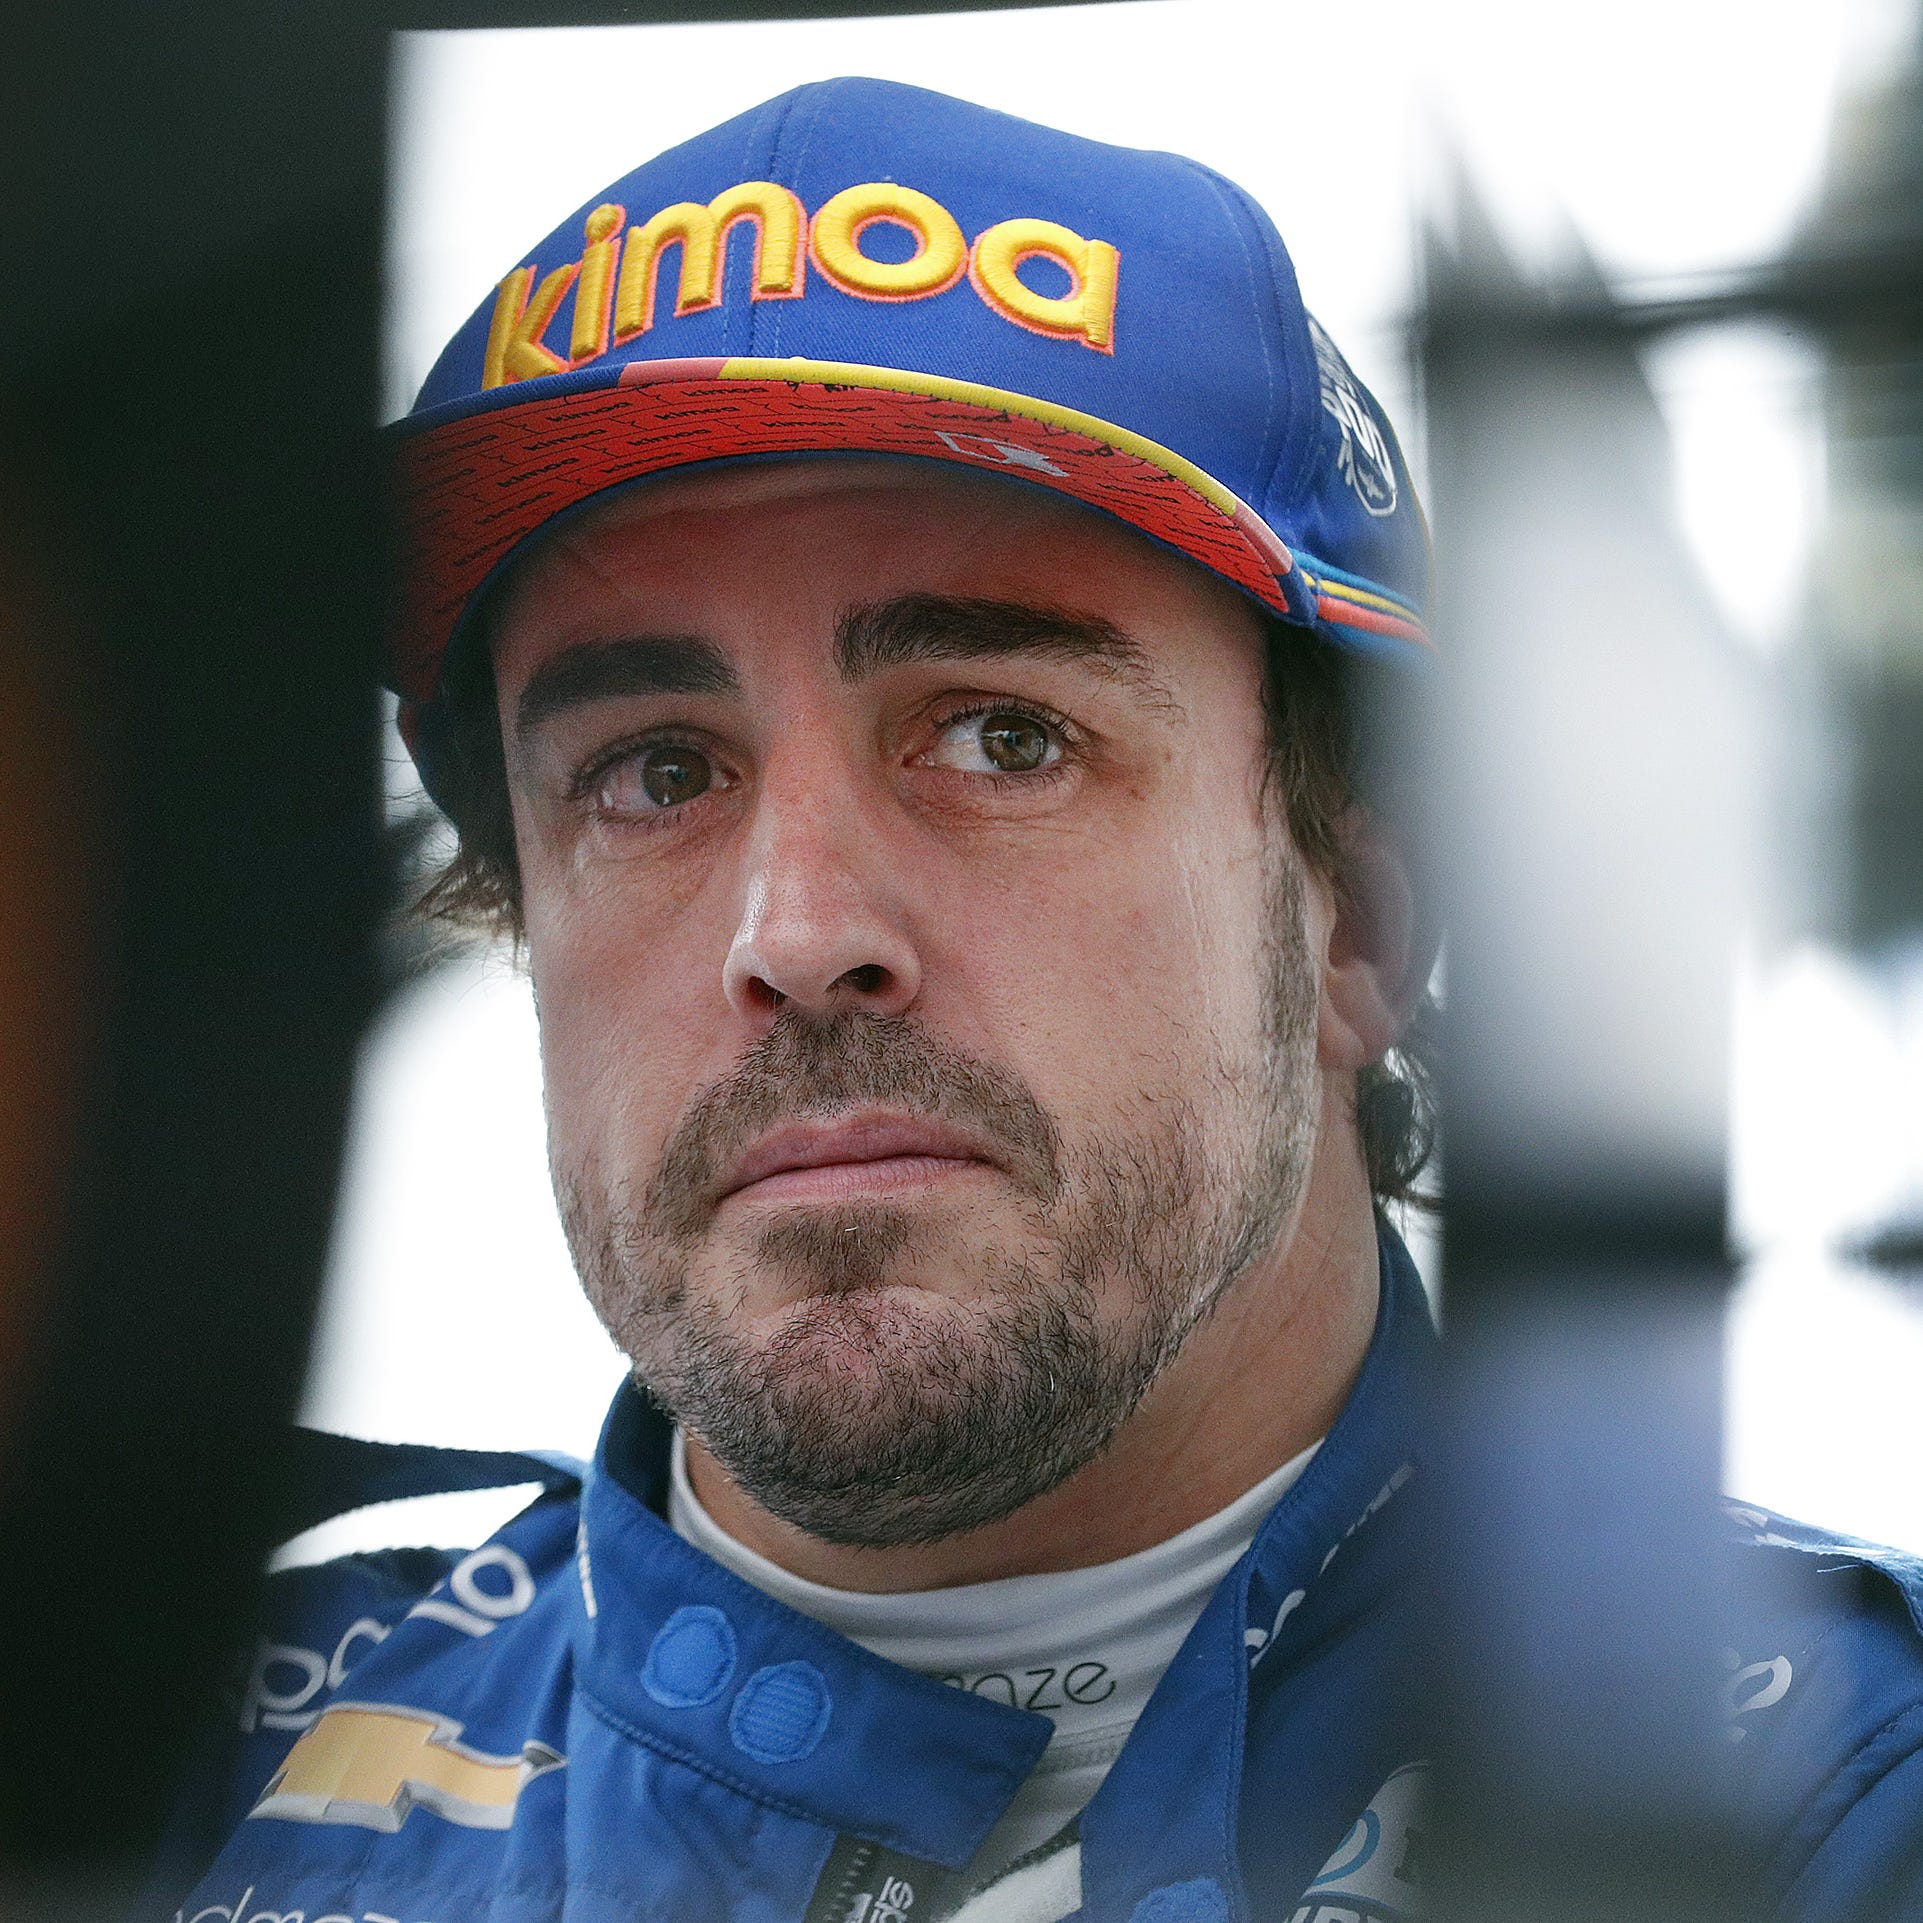 Fernando Alonso is bumped from 2019 Indy 500 on final run; Fast Nine next